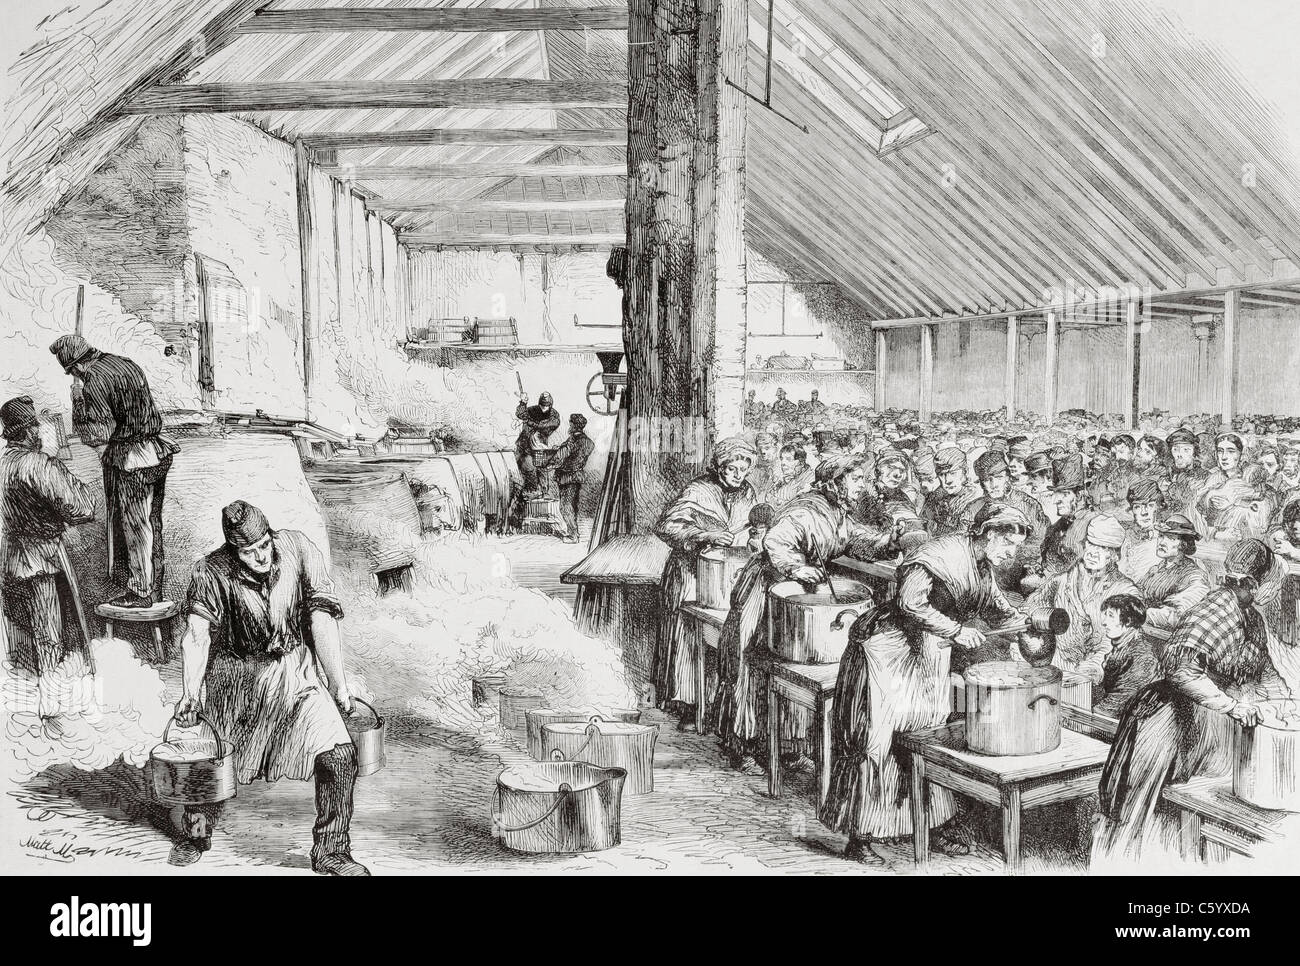 soup kitchens famine] - 100 images - potato famine, in the famine ...